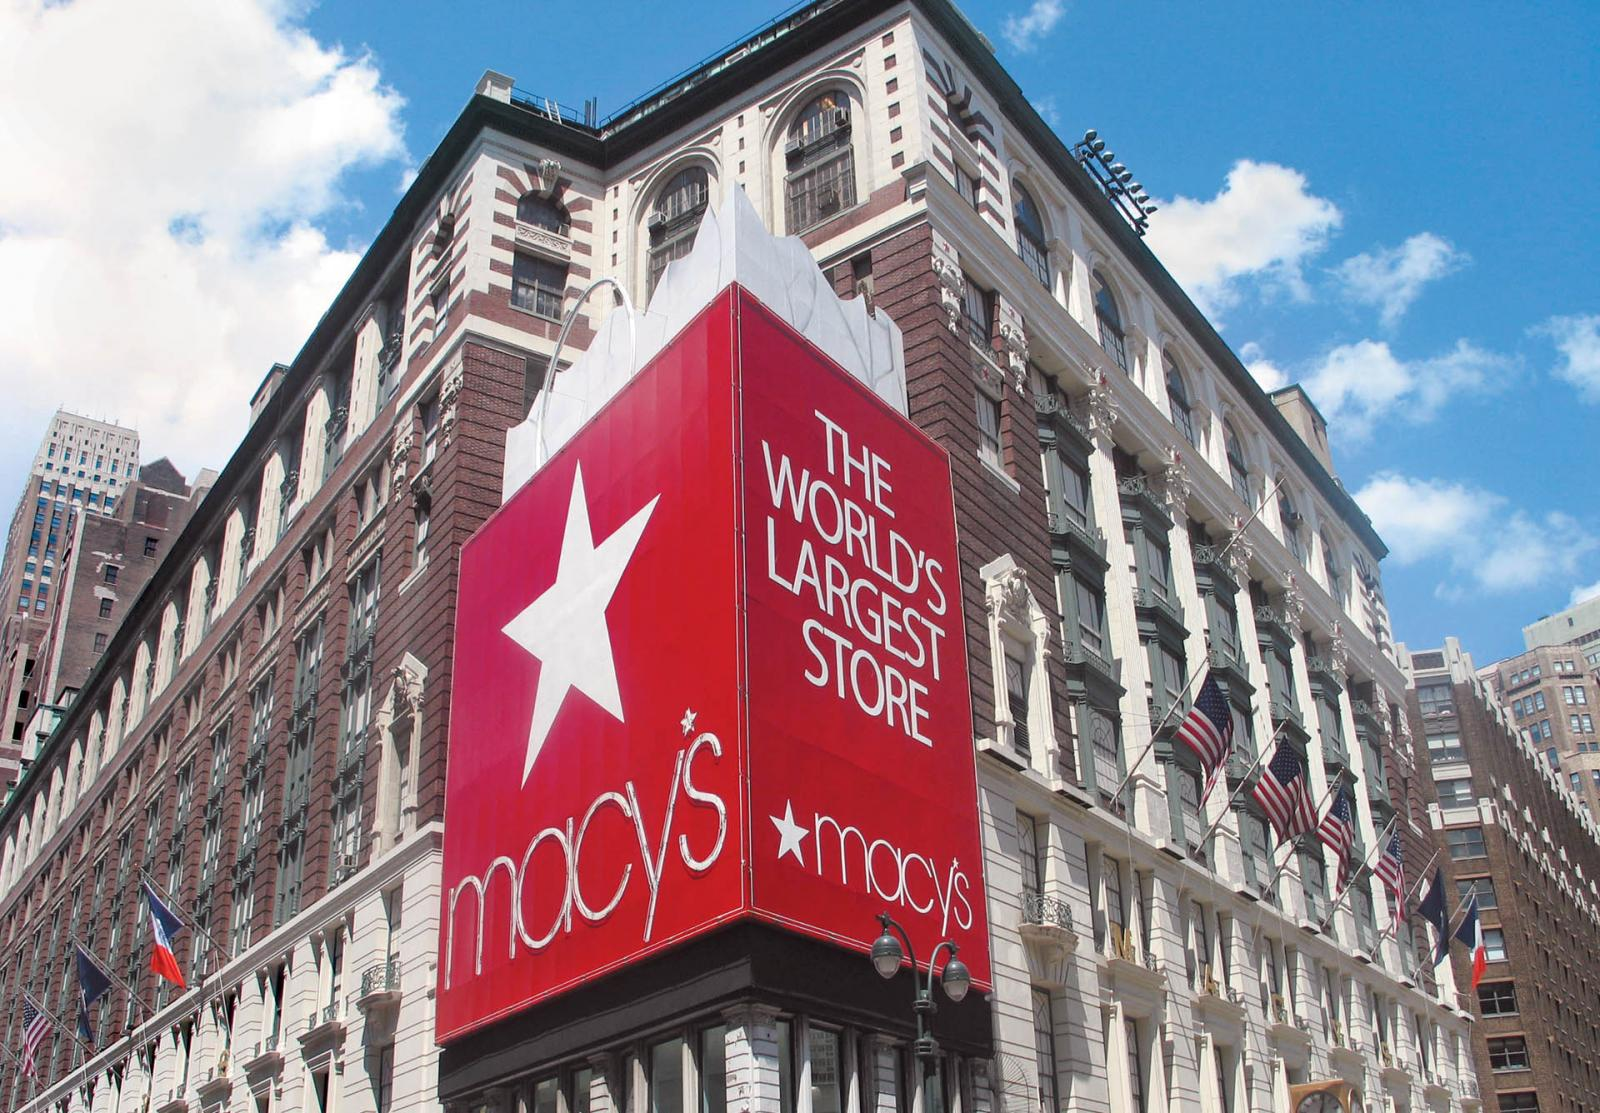 Macys in New York